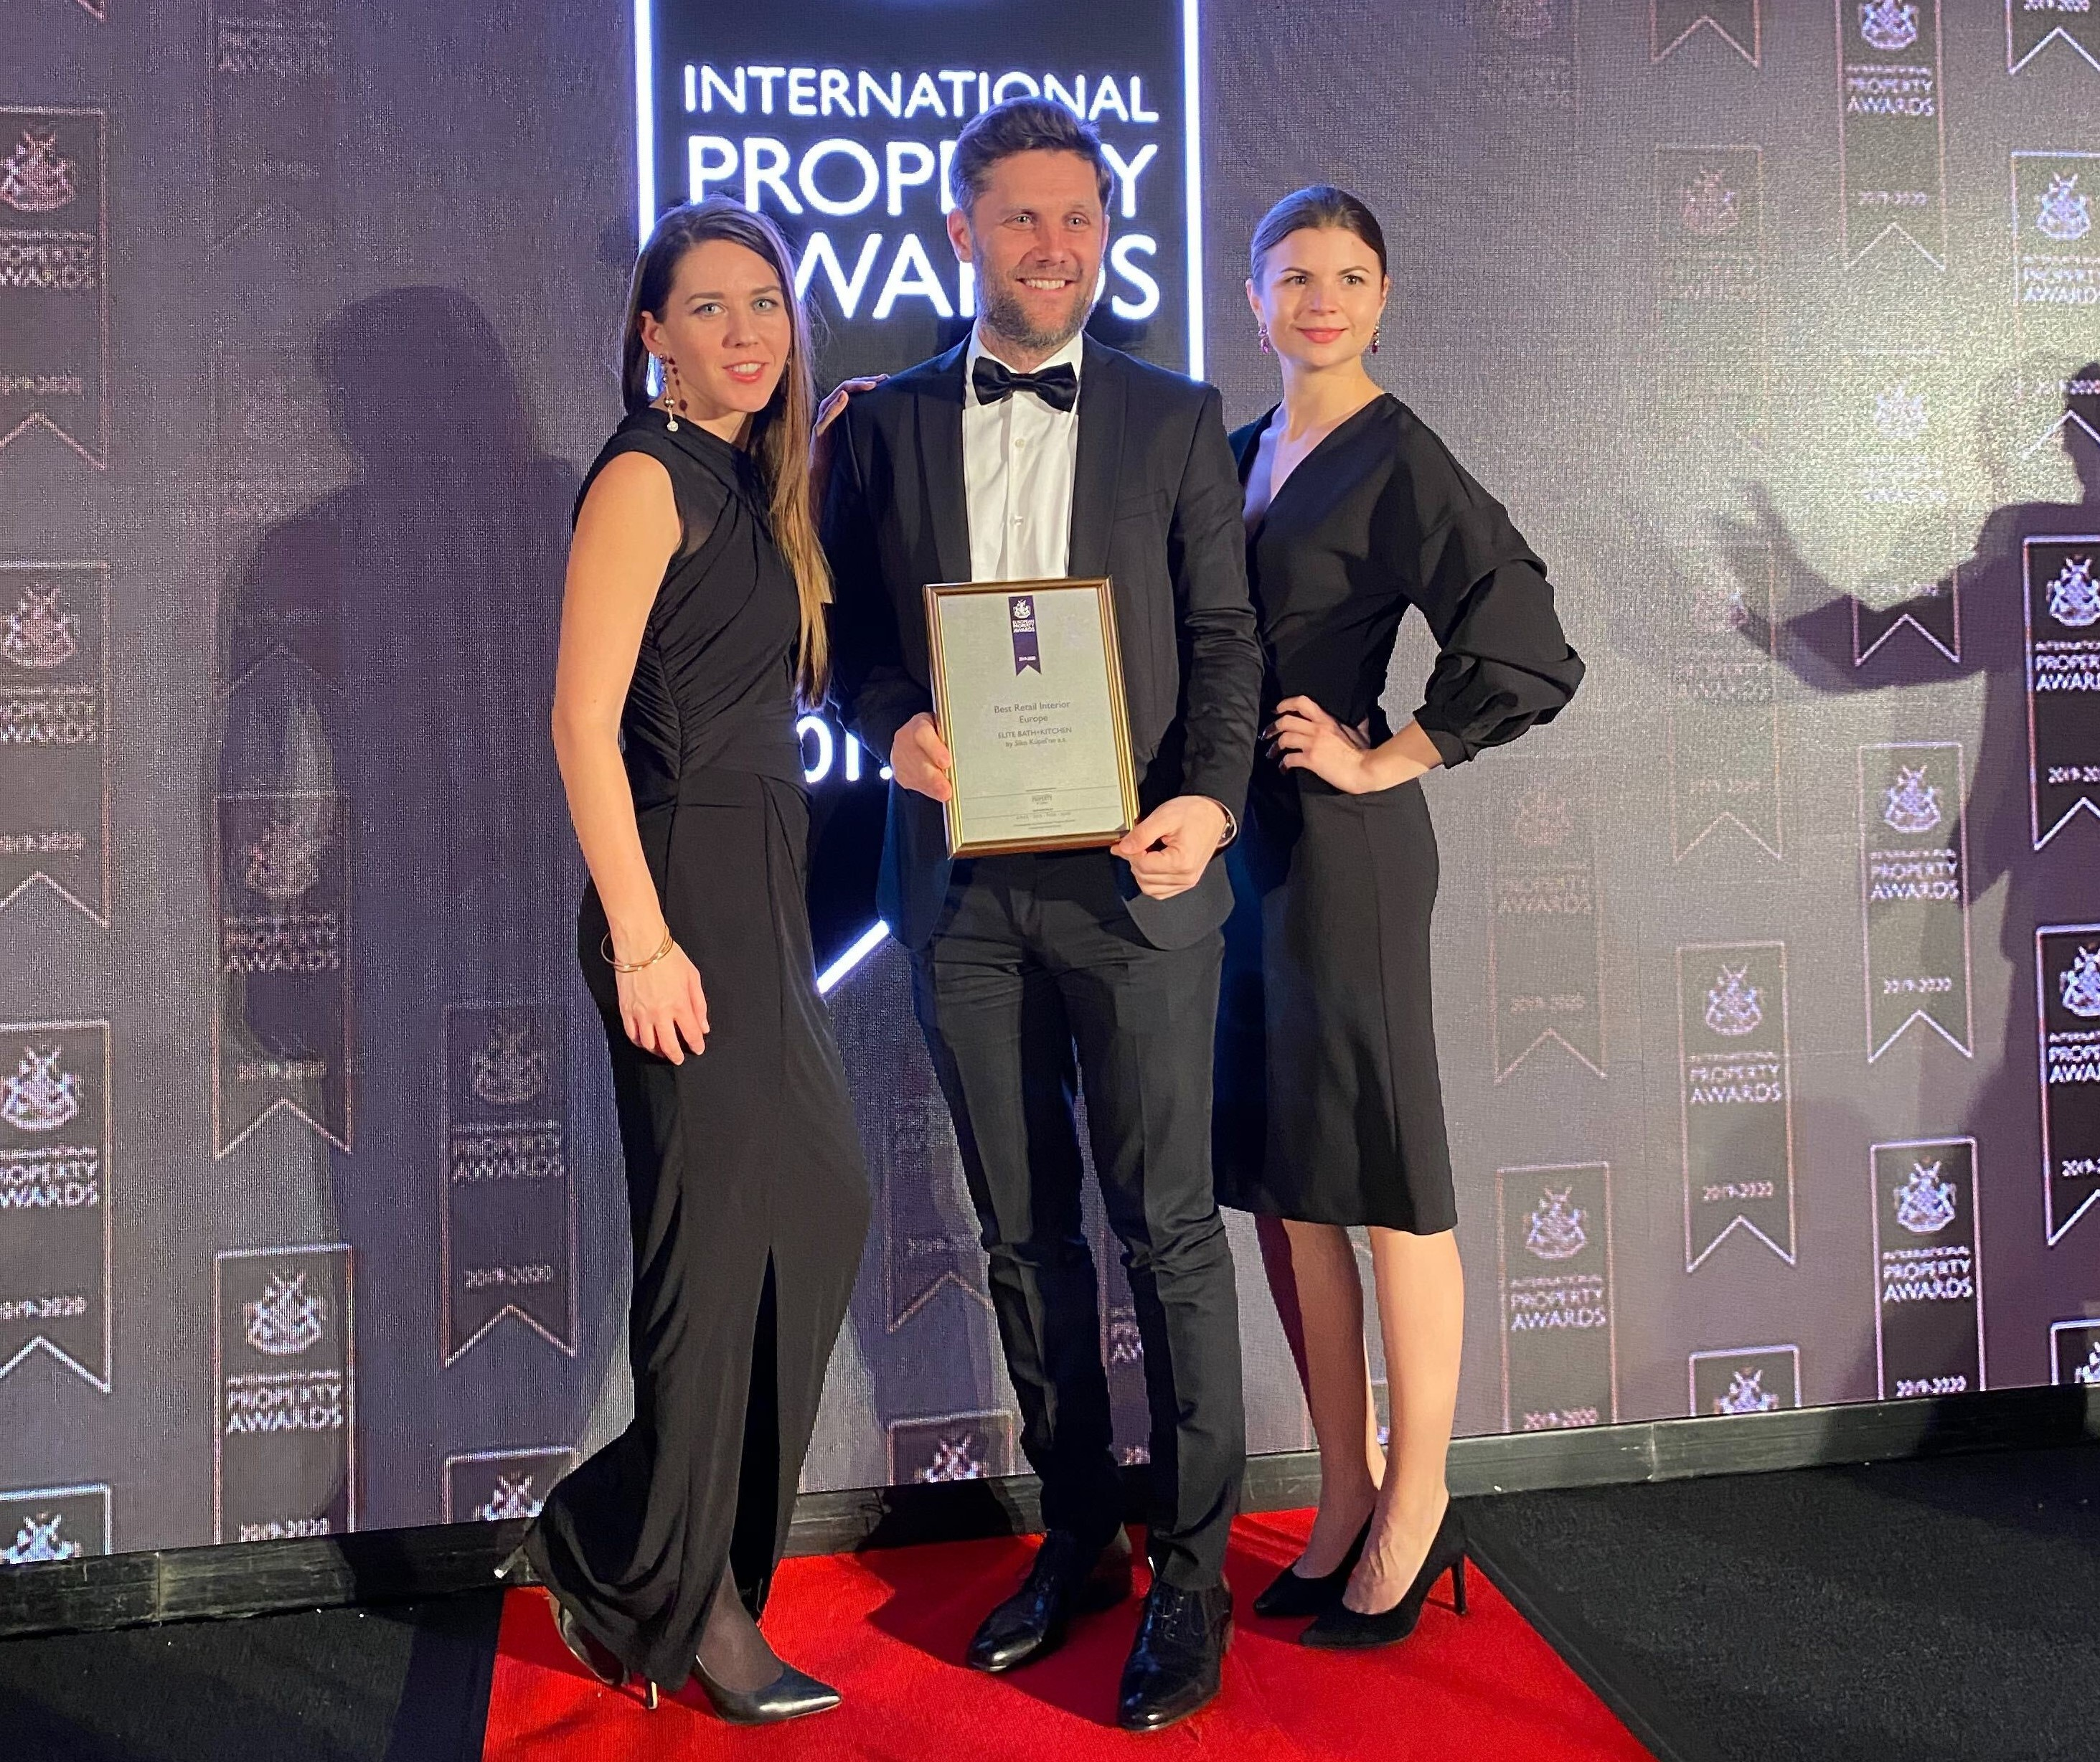 Uspeli jsme na European Property Awards 2019-2020 - uvod- forth